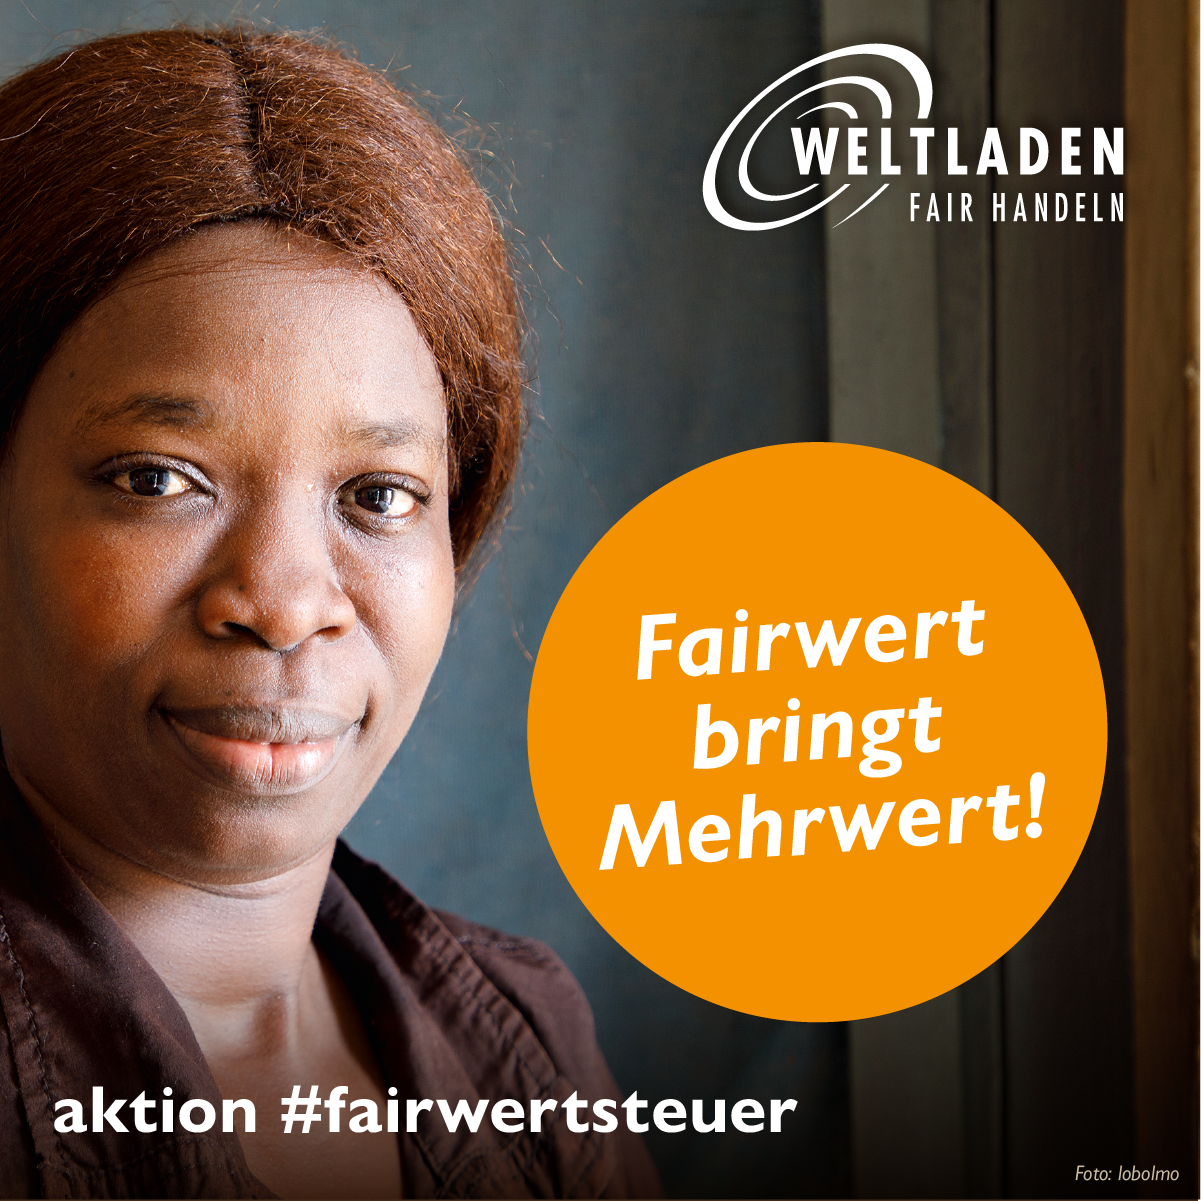 sharepic aktion fairwertsteuer fairwert